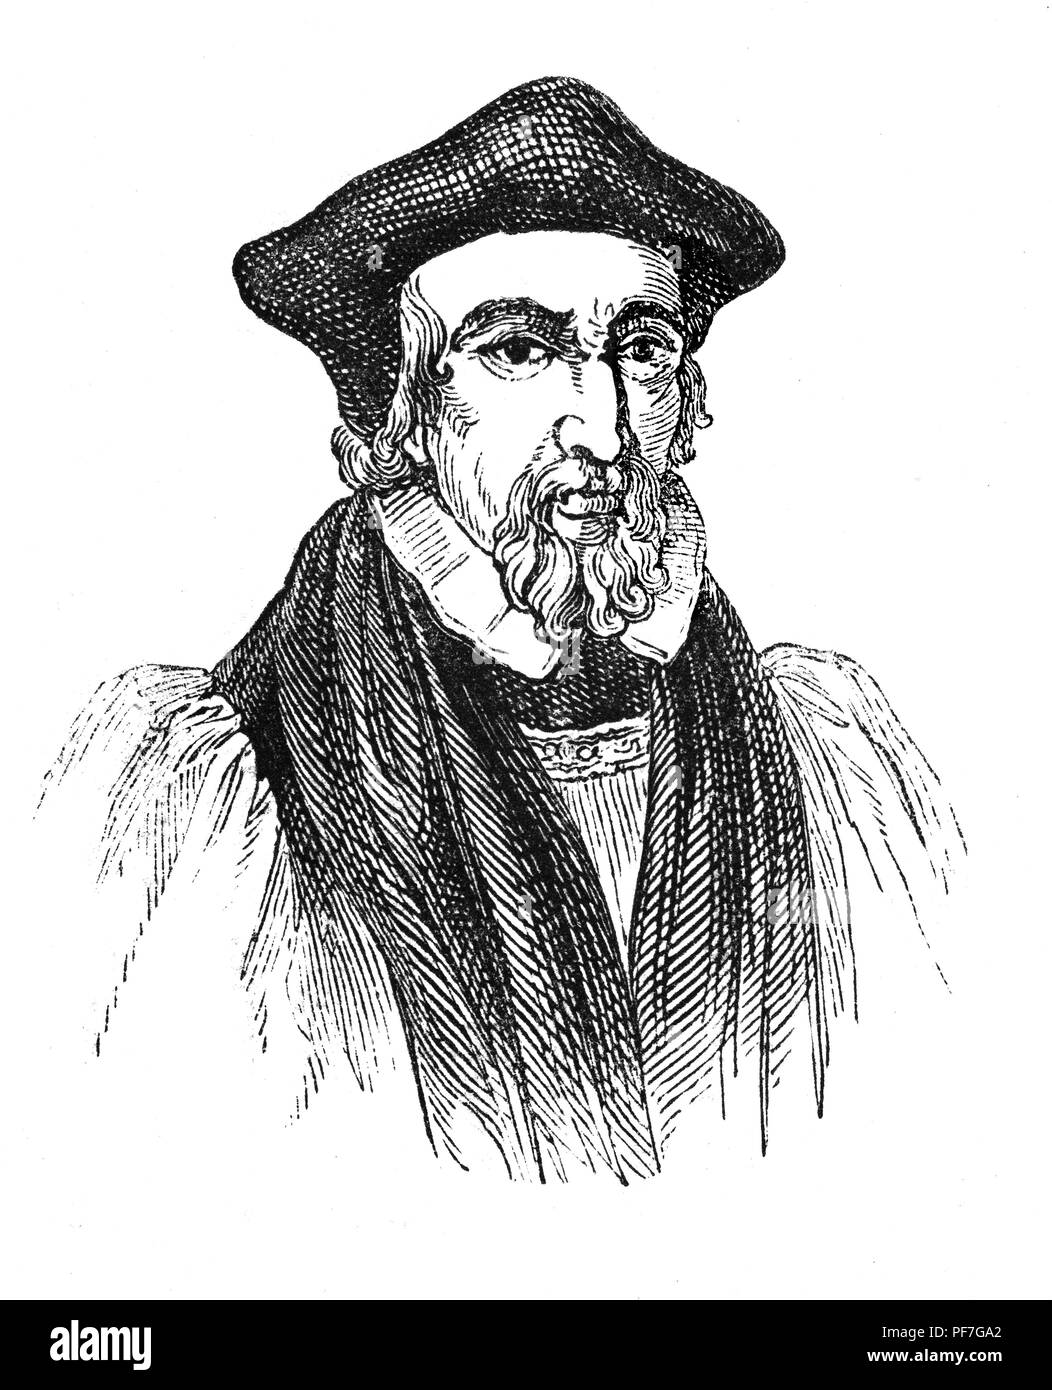 Portrait of Hugh Latimer (1487-1555), Fellow of Clare College, Cambridge, and Bishop of Worcester before the Reformation, and later Church of England chaplain to King Edward VI as the English church moved in a more Protestant direction. He then served as chaplain to Katherine Duchess of Suffolk. However, when Edward VI's sister Mary I came to the throne, he was tried for his beliefs and teachings in Oxford and imprisoned. In October 1555 he was burned at the stake outside Balliol College, Oxford. - Stock Image